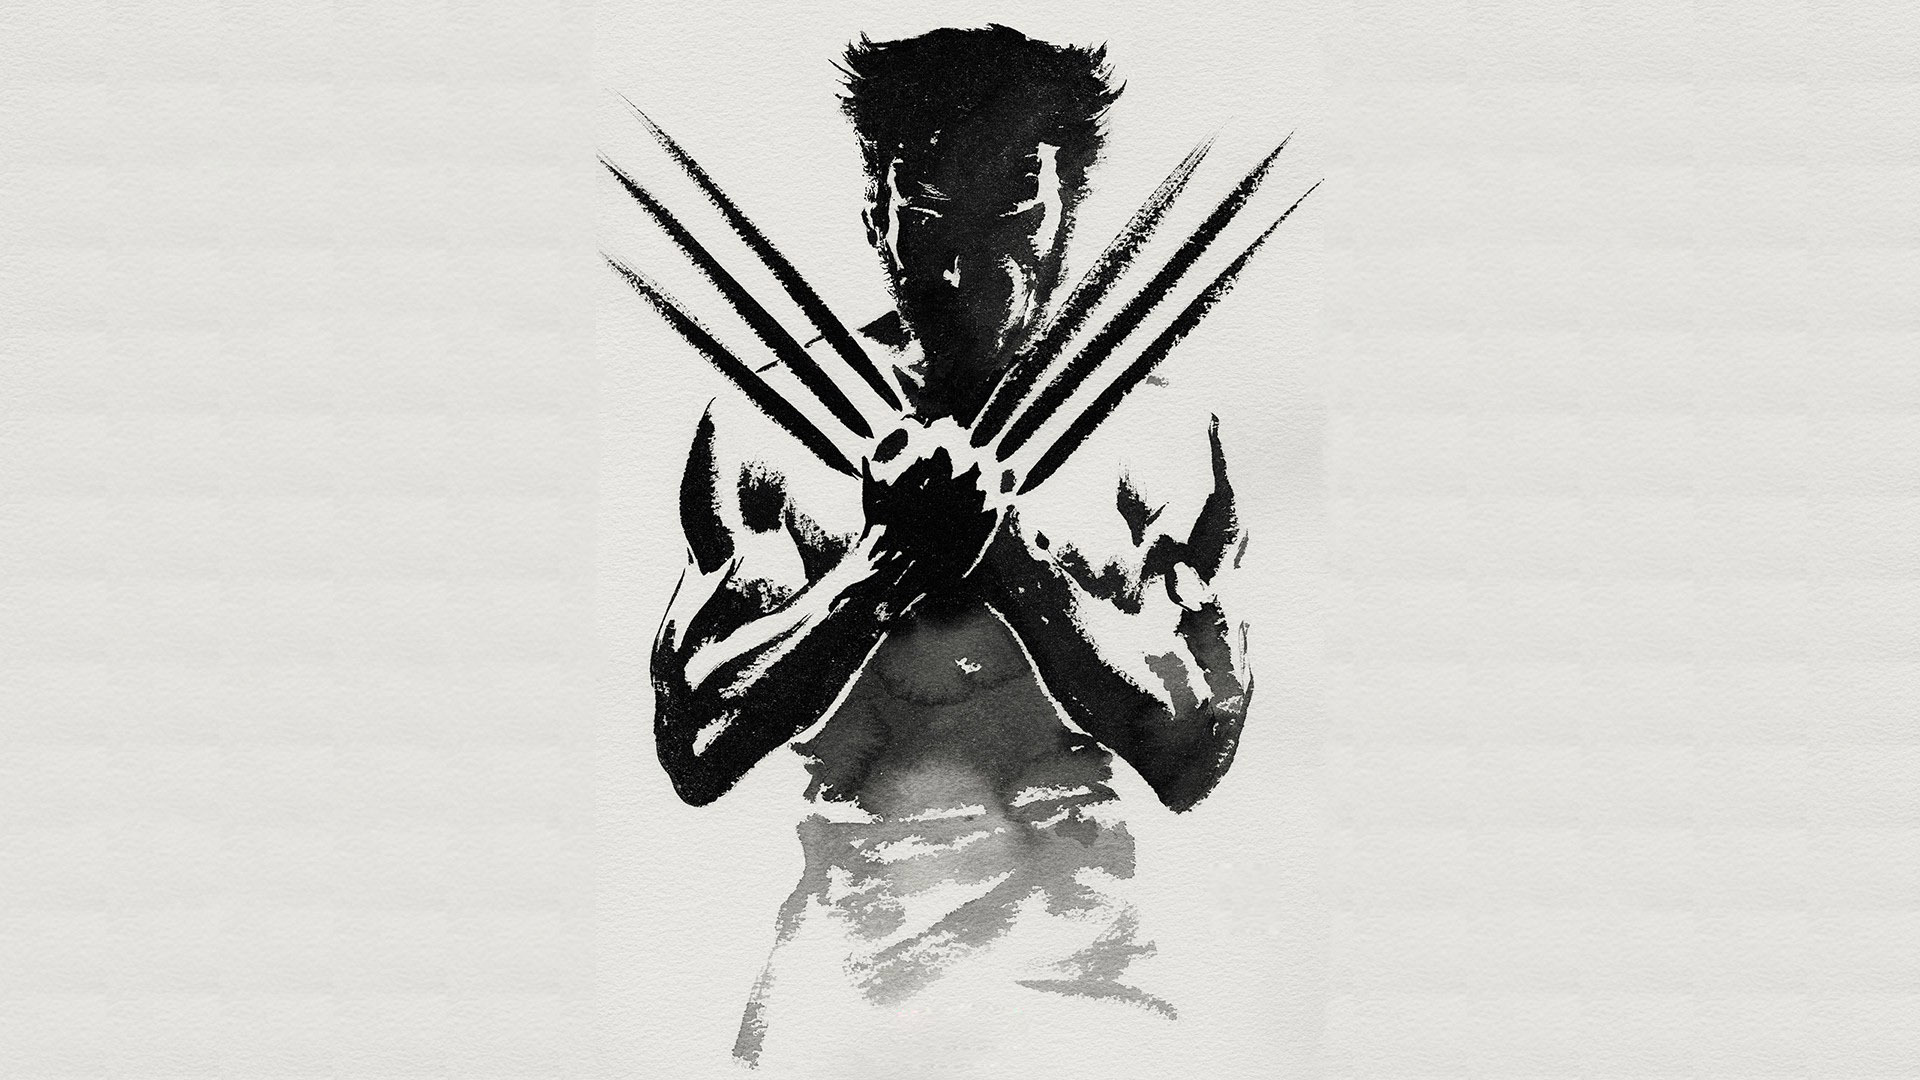 wolverine hd wallpapers - photo #7